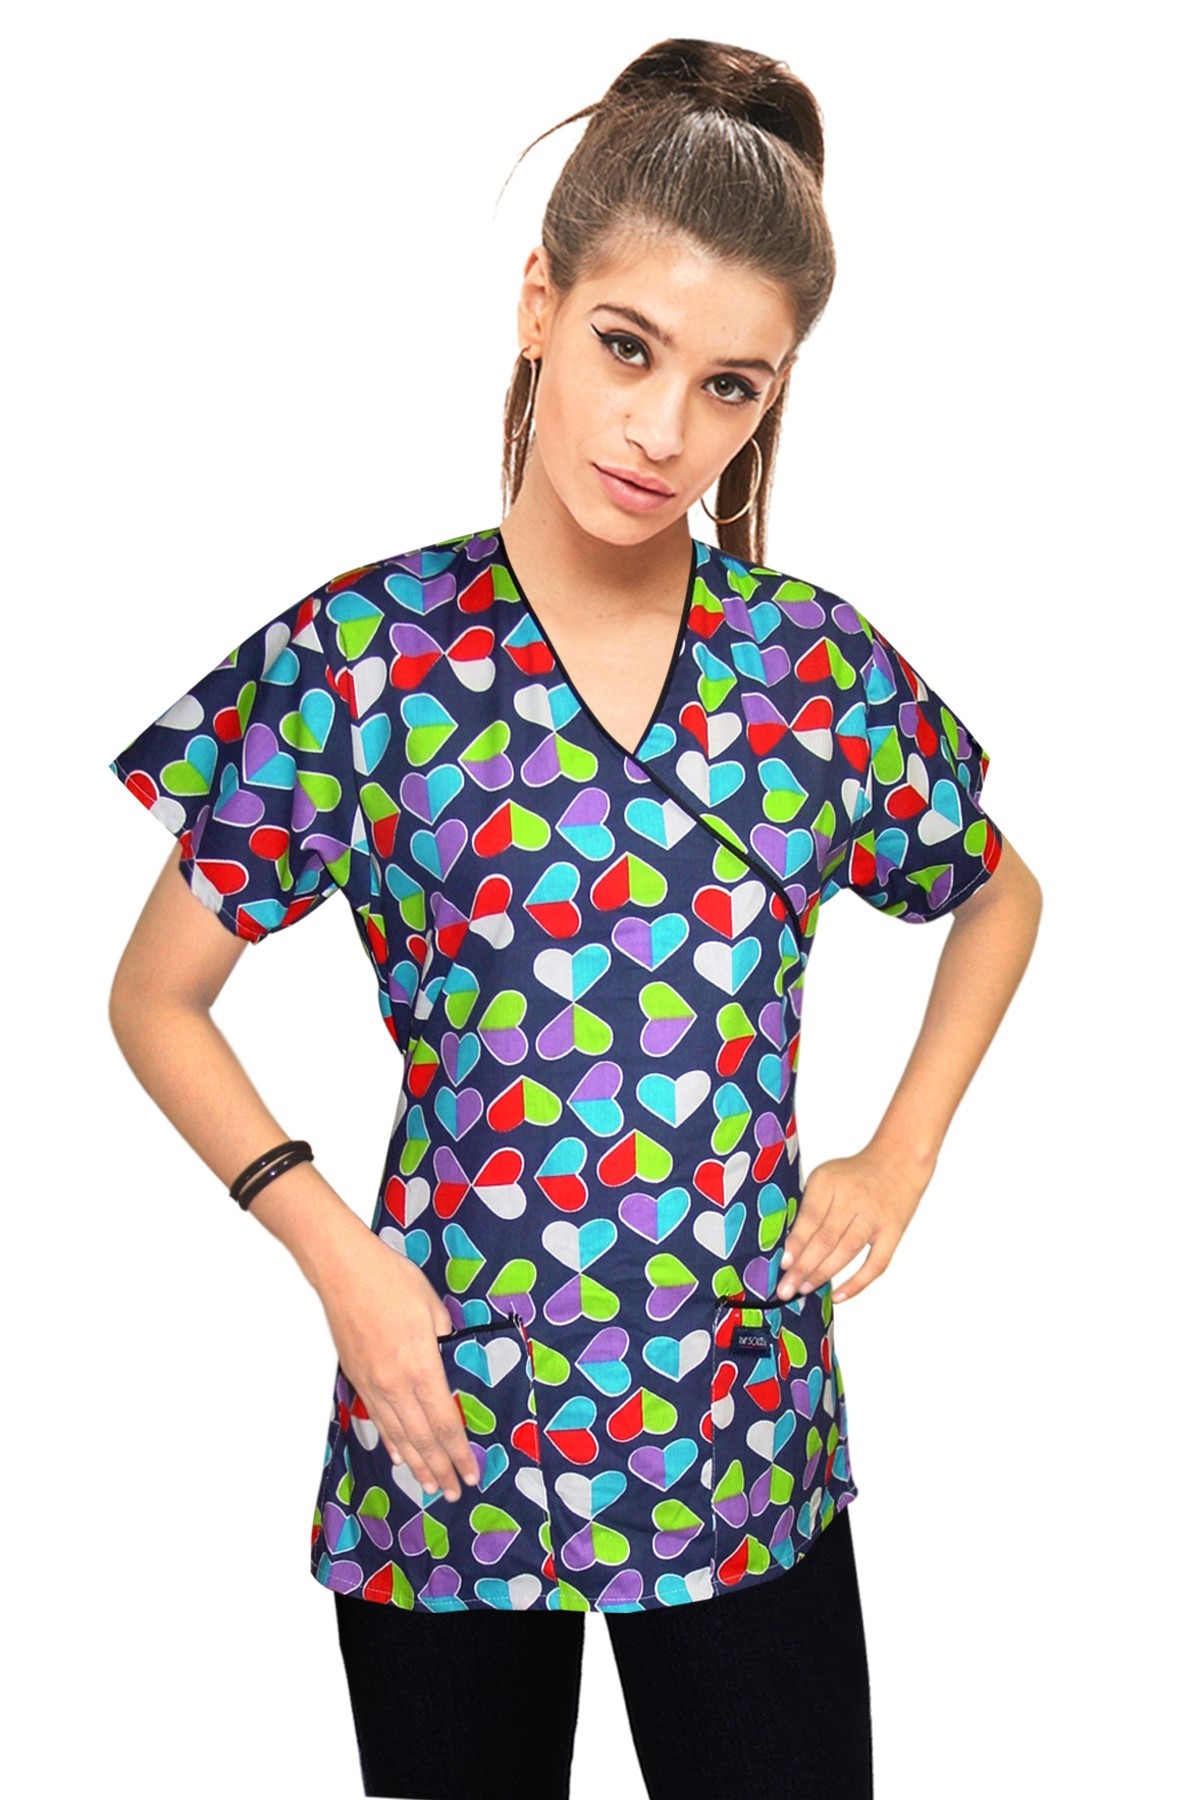 Top mockwrap 3 pocket  half sleeve in Technicolor hearts print with black piping